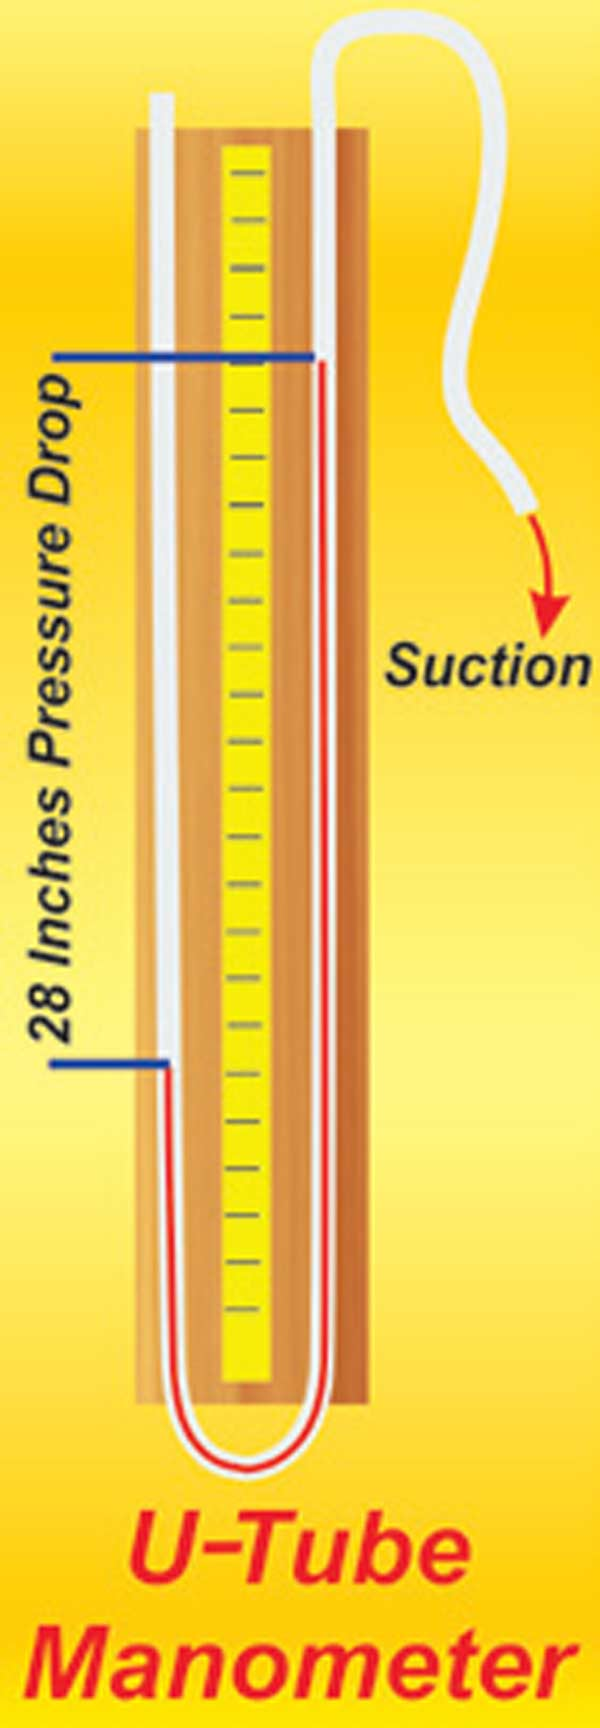 Fig. 2.3. An illustration of a simple manometer made from a hose, a tape measure, and a piece of 2x4. This shows the usual fixed pressure drop used when testing is at 28 inches, although there are good reasons for not going this route.